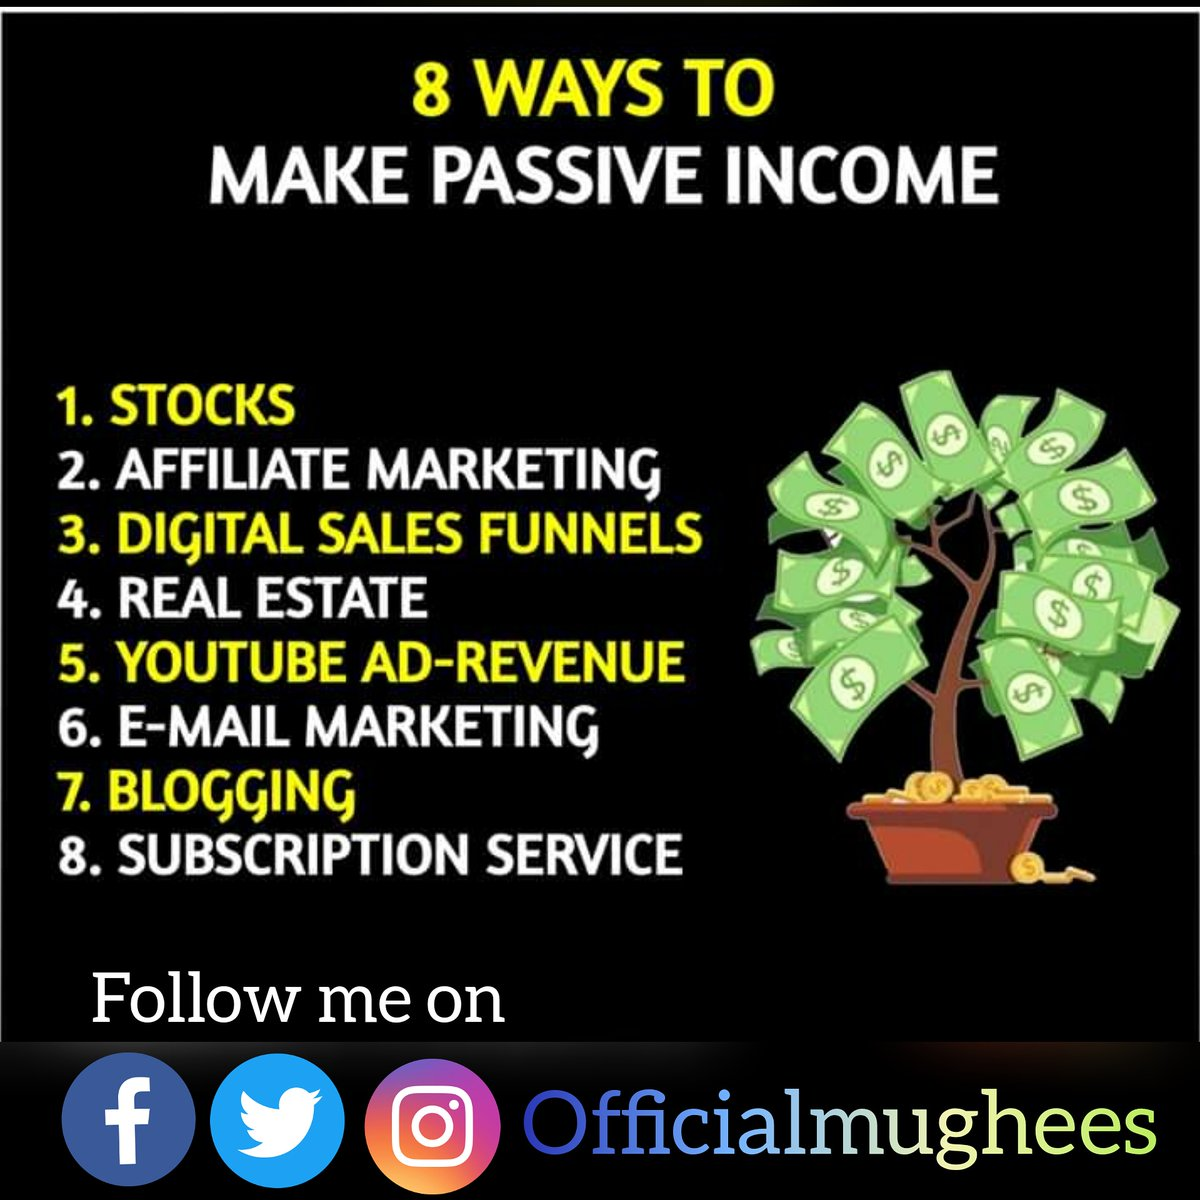 Ways to Make Passive income. #passiveincome #makemoneyfromhome#change #motivation #lifequotes #goals #goalsetting #motivationalspeaker   #motivationalspeakerRana_Mughees #Rana_Mughees_ul_islam #Rana_Mughees #Mughni #mughni #Mughni_Ranapic.twitter.com/4AXUAXcce4 – at Khanewal City